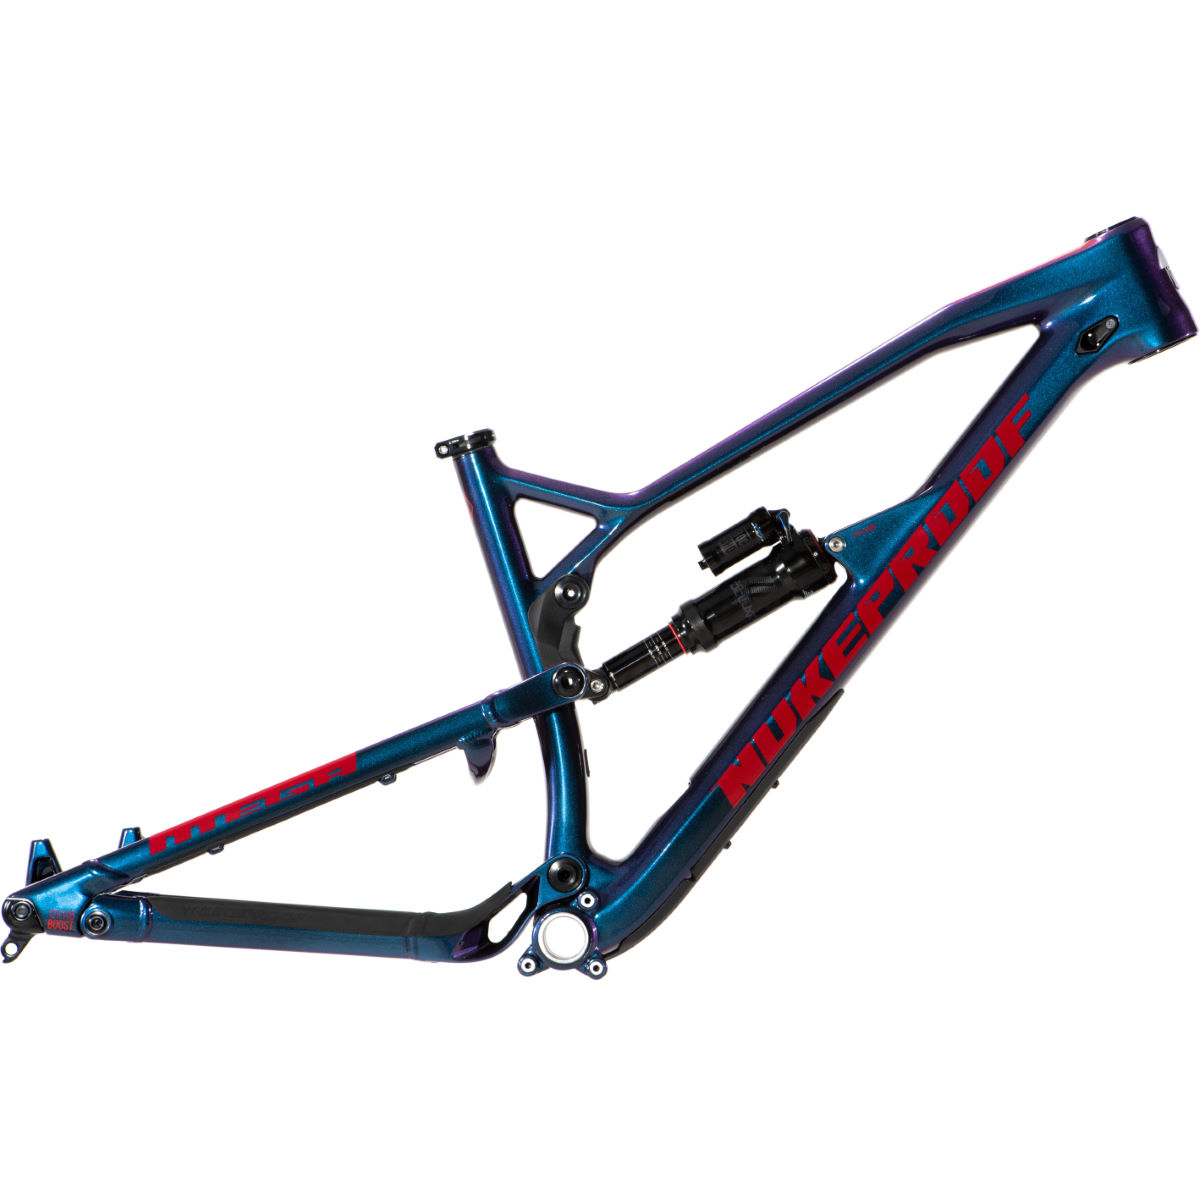 Nukeproof Nukeproof Mega 275 Carbon Mountain Bike Frame (2019)   Full Sus Mountain Bike Frames